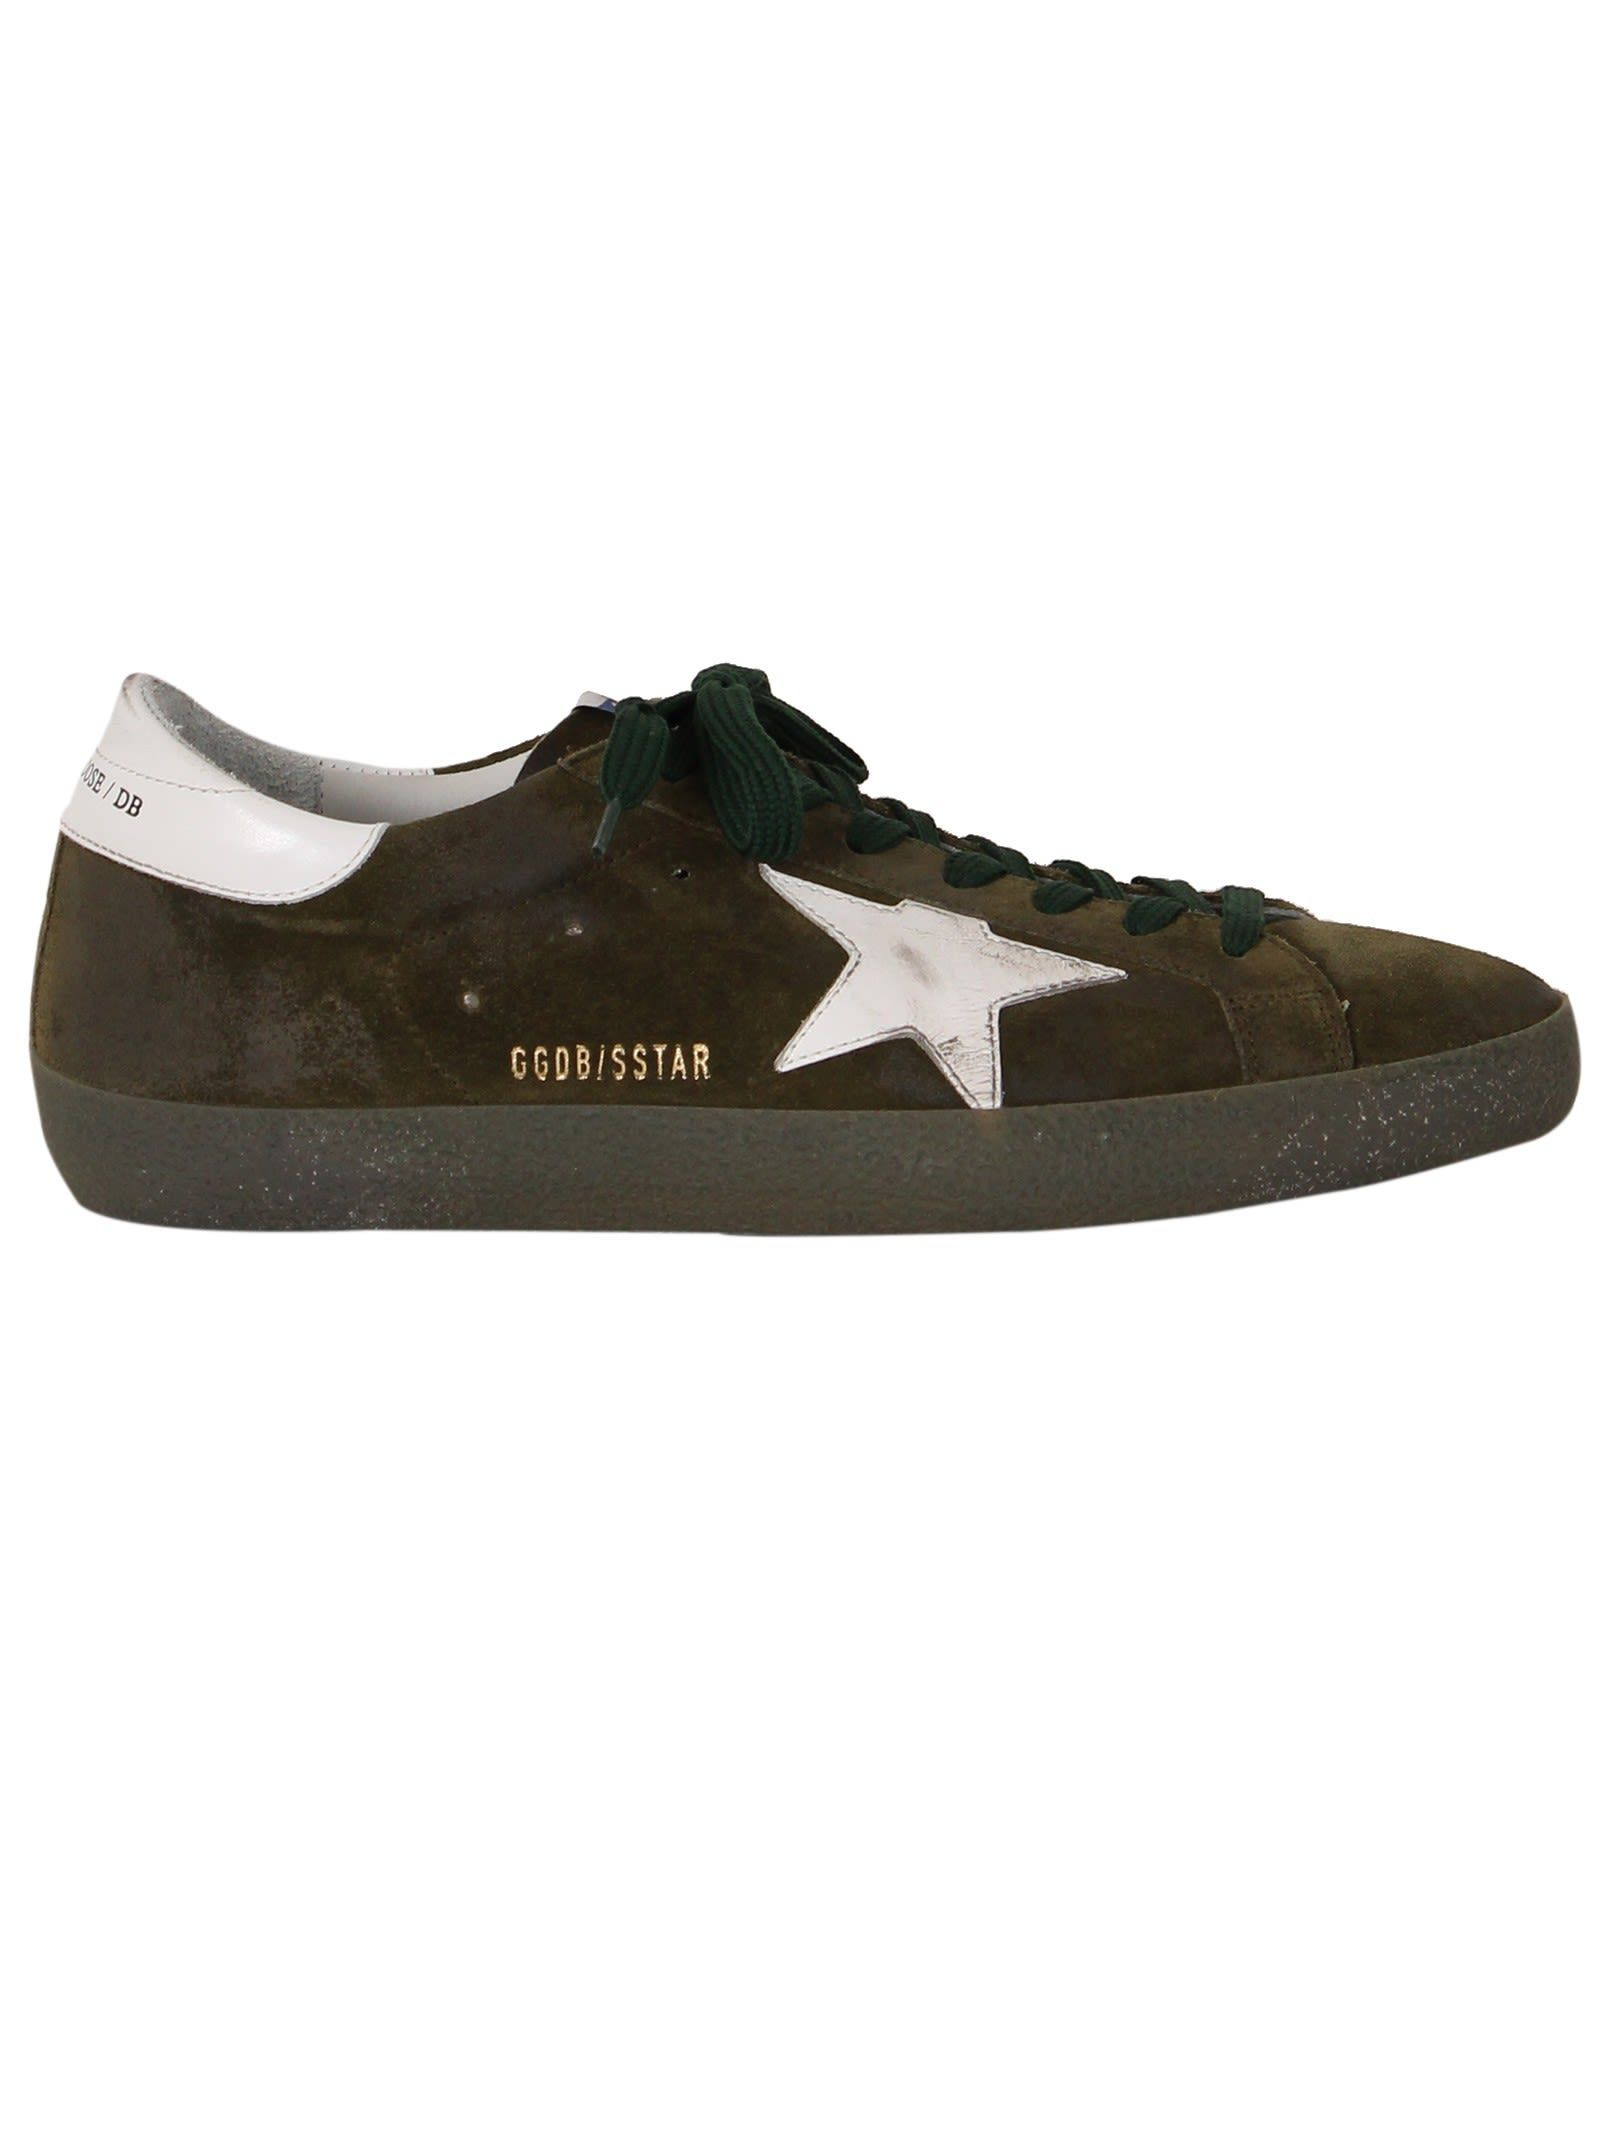 45a9149f87 GOLDEN GOOSE OLIVE SUEDE SUPERSTAR LOW SNEAKERS. #goldengoose #shoes ...